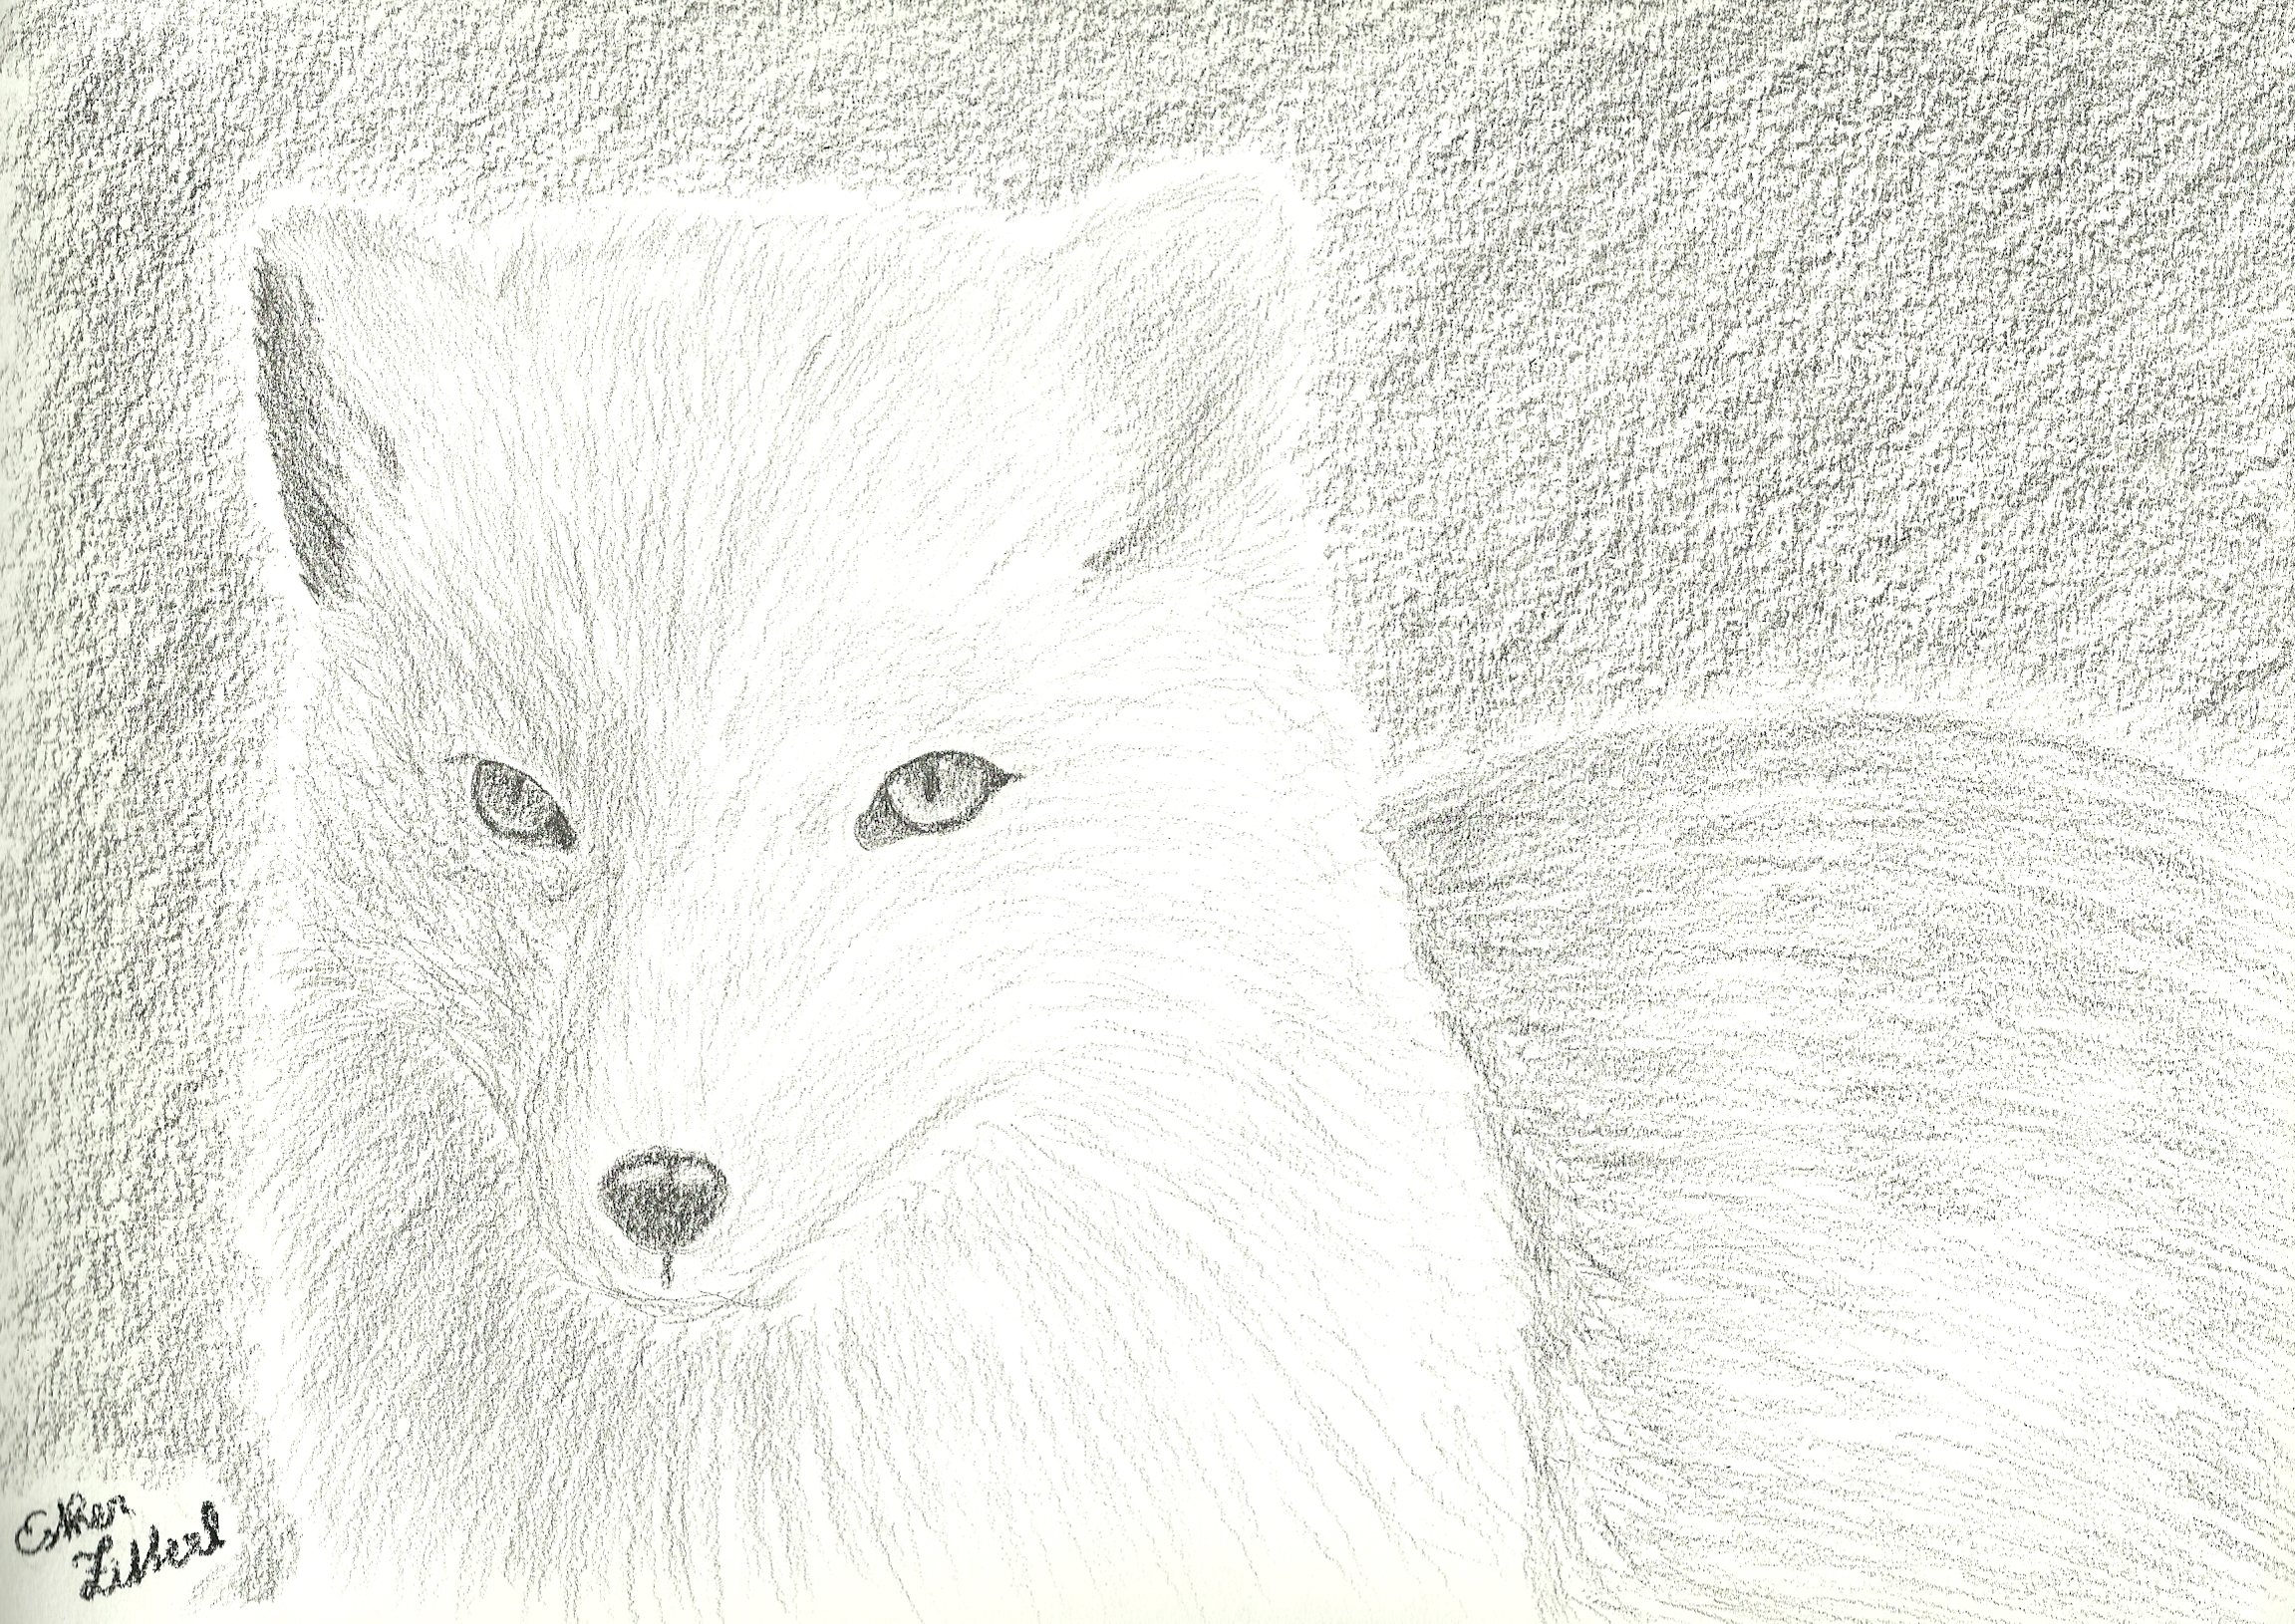 Arctic fox by xcxninuixcx arctic fox by xcxninuixcx